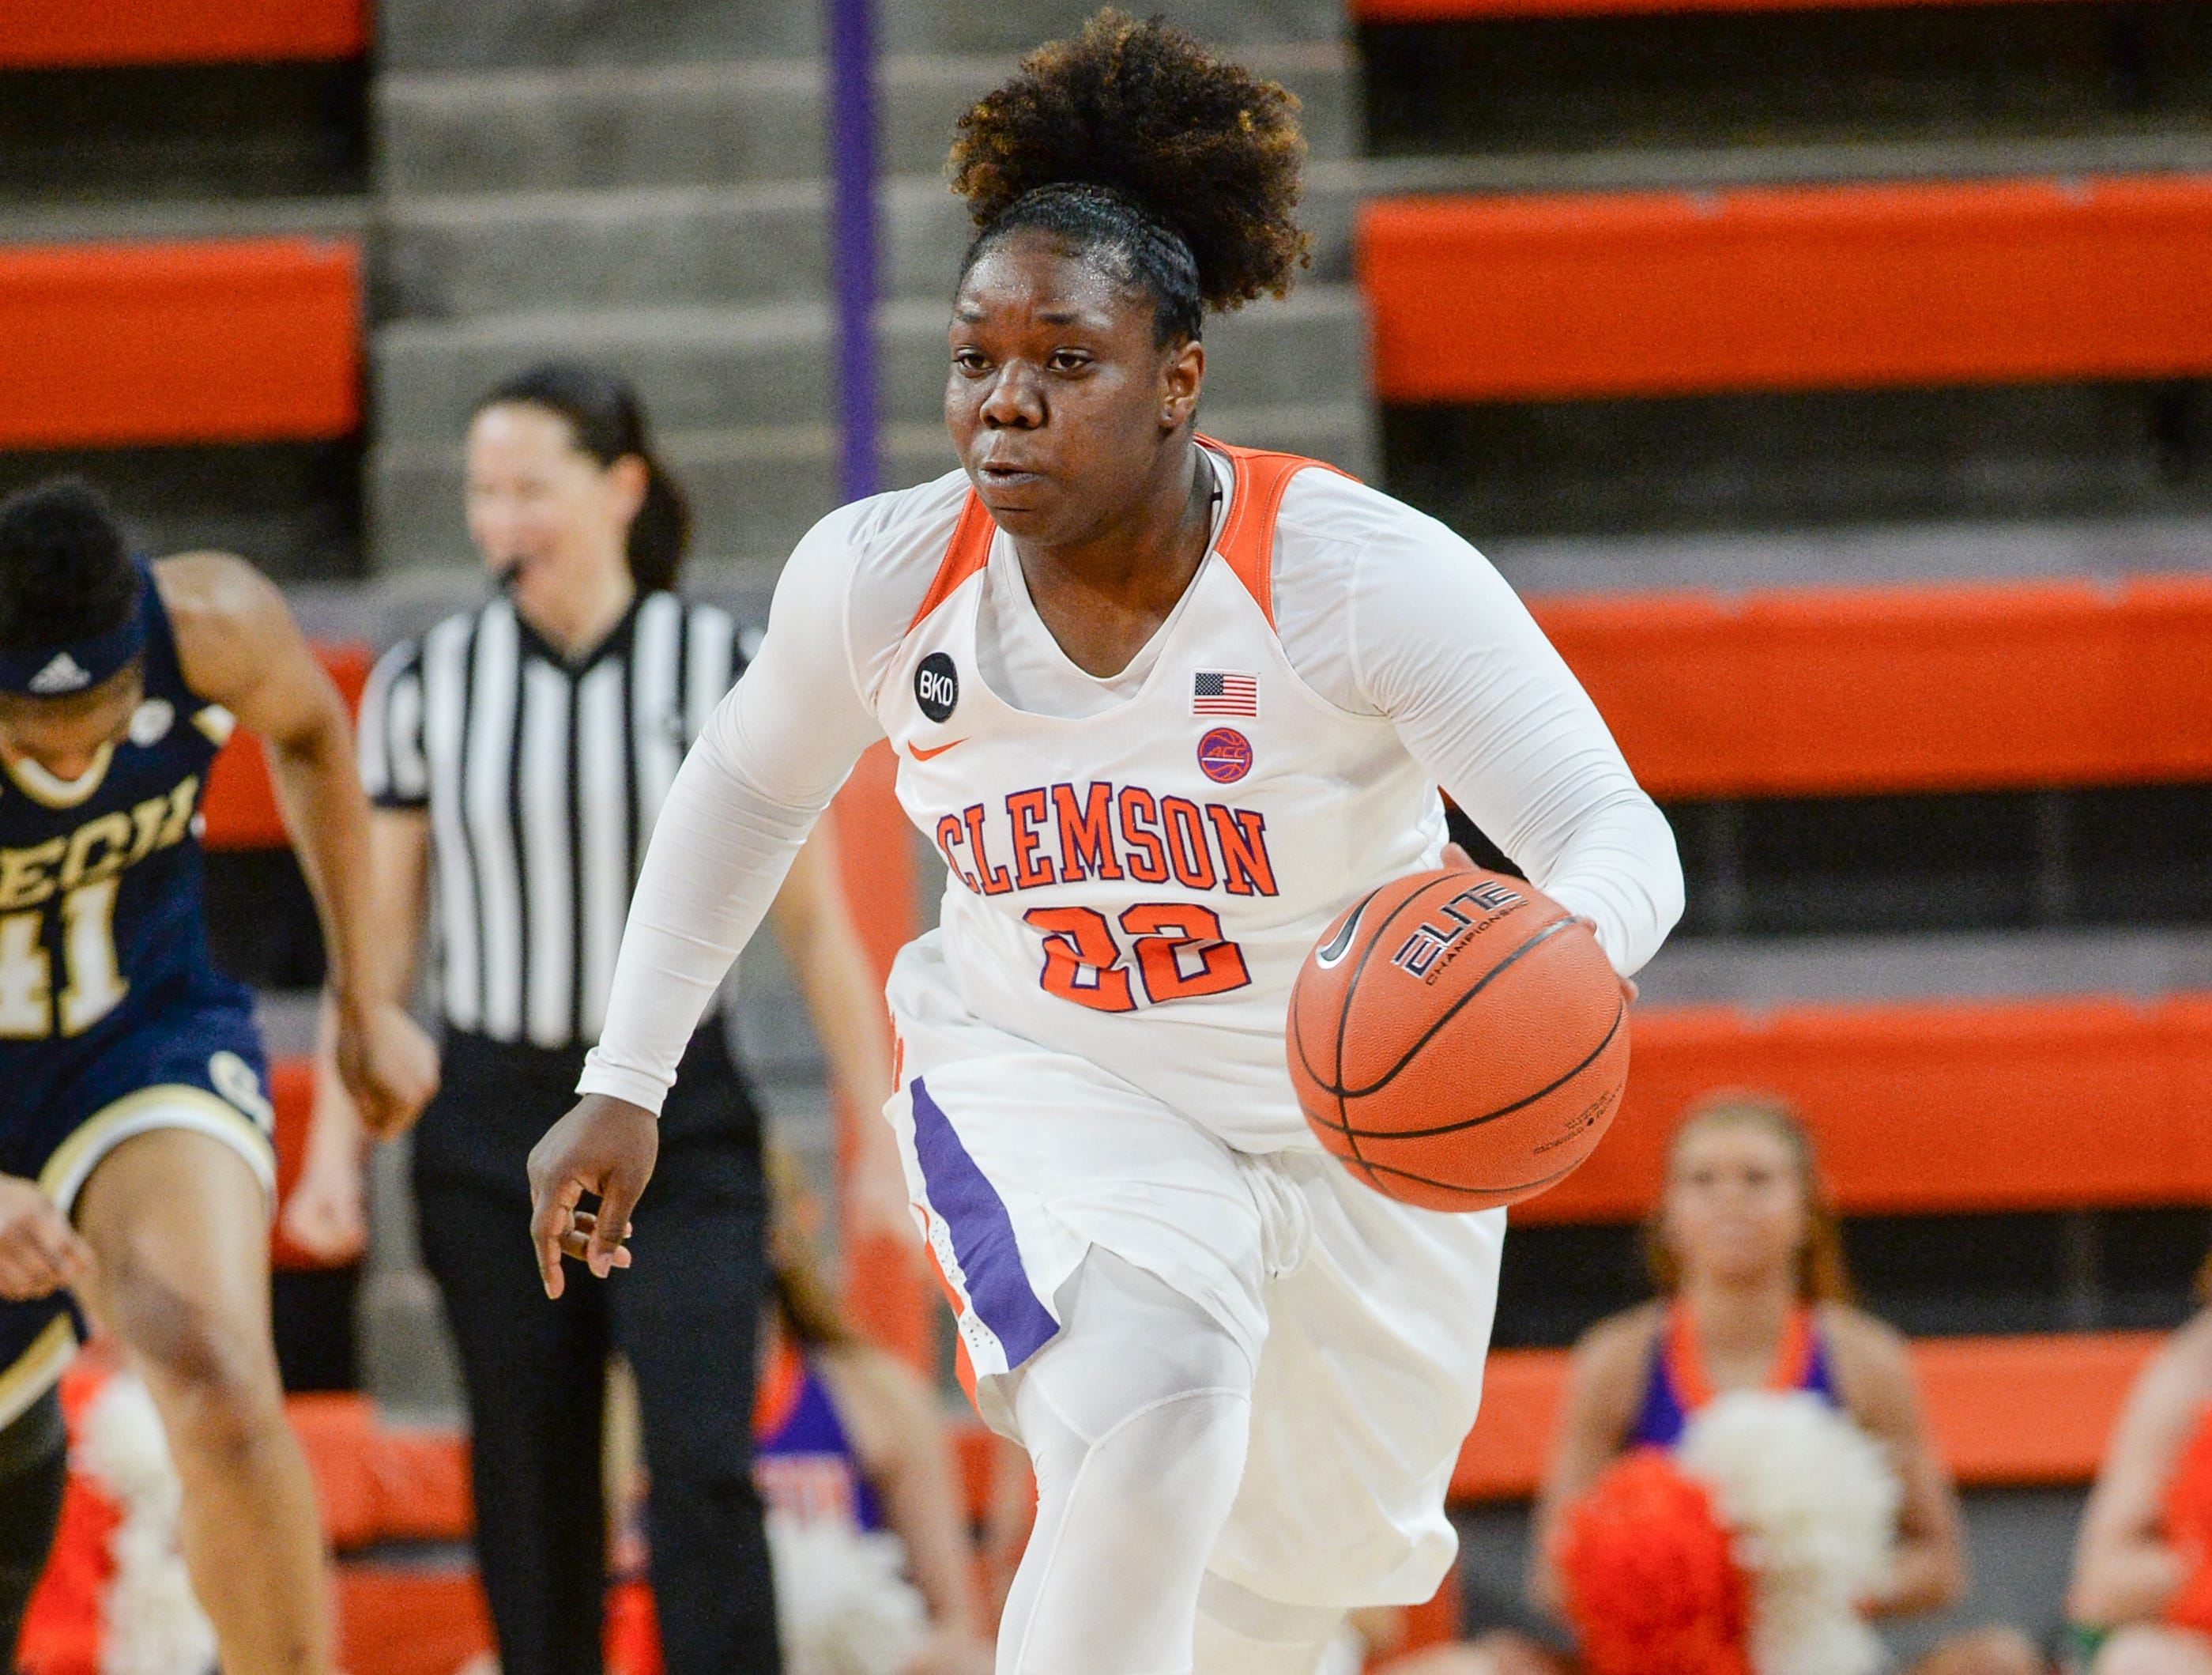 Clemson guard Keniece Purvis(22) dribbles playing Georgia Tech during the fourth quarter at Littlejohn Coliseum in Clemson Thursday, January 17, 2019.